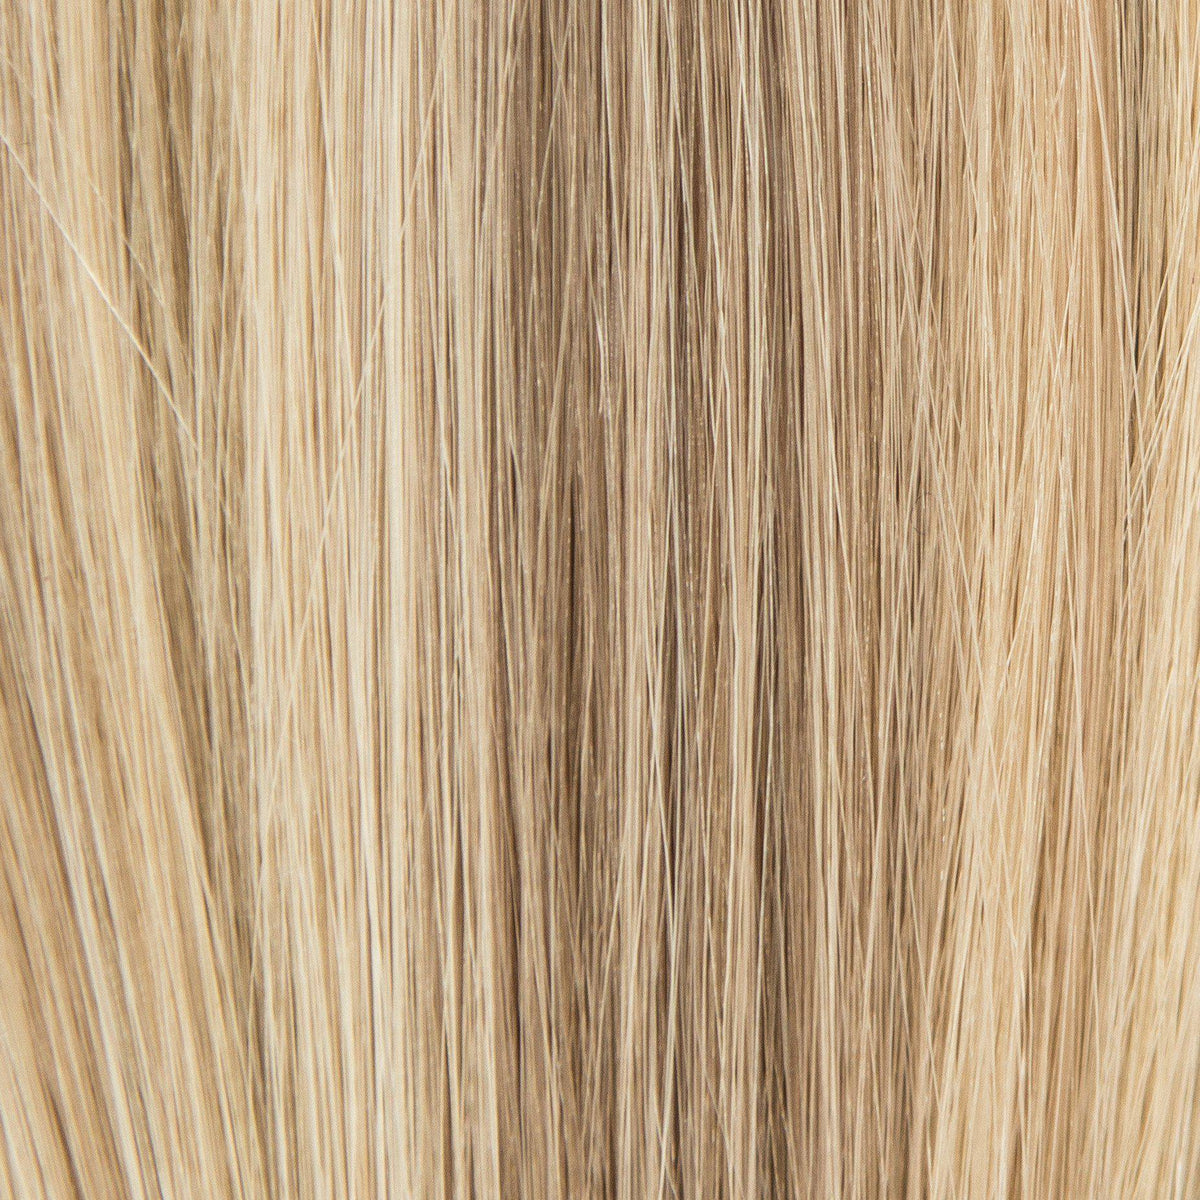 Waved By Laced Hair - Waved By Laced Hair Hand Tied Weft Extensions Dimensional #10/16